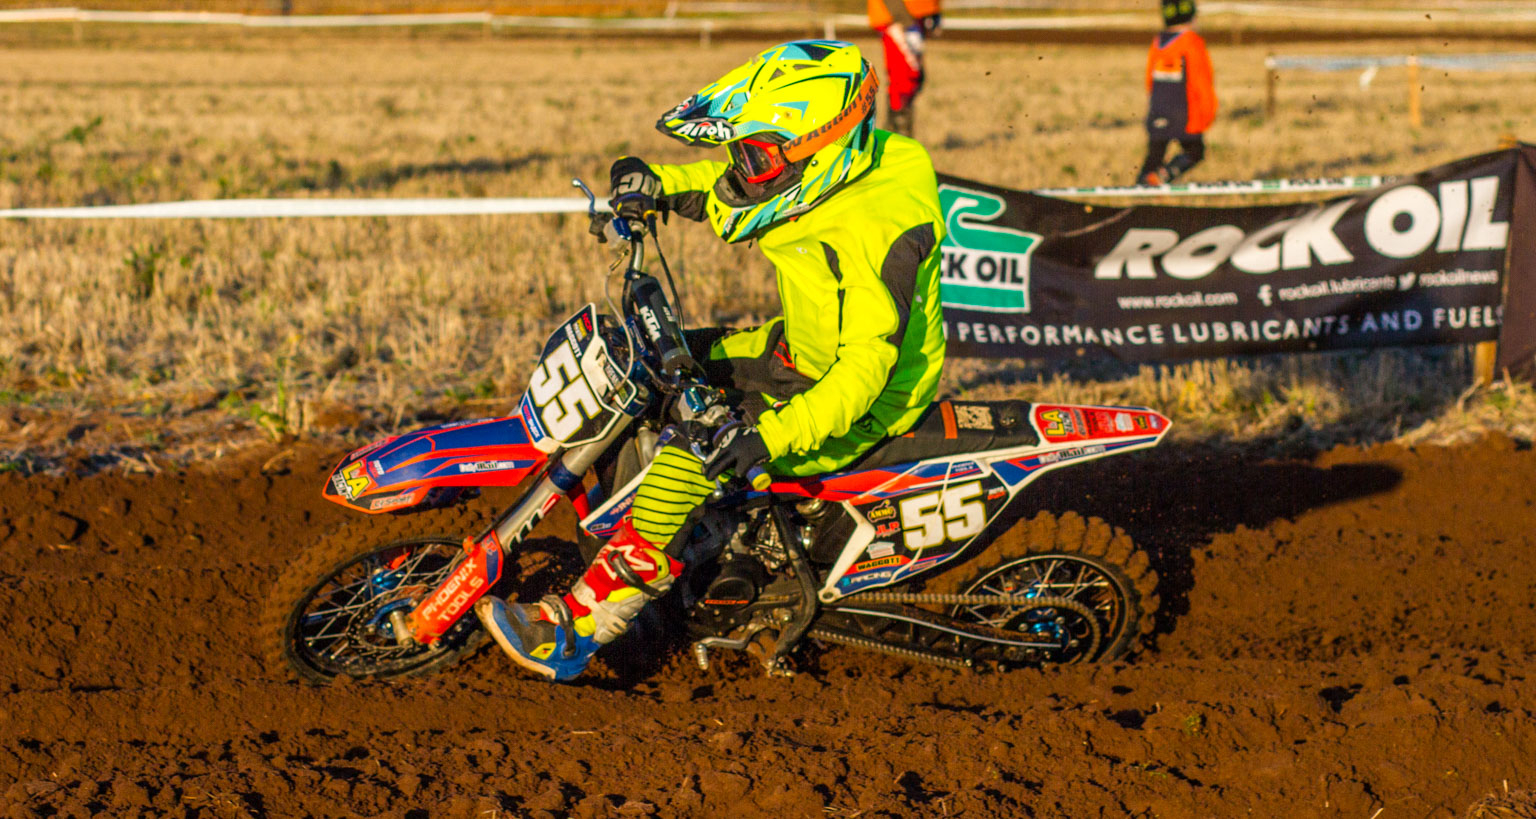 Ryan Waggott dominated the 65cc class at the Scottish Championship in Dunbar